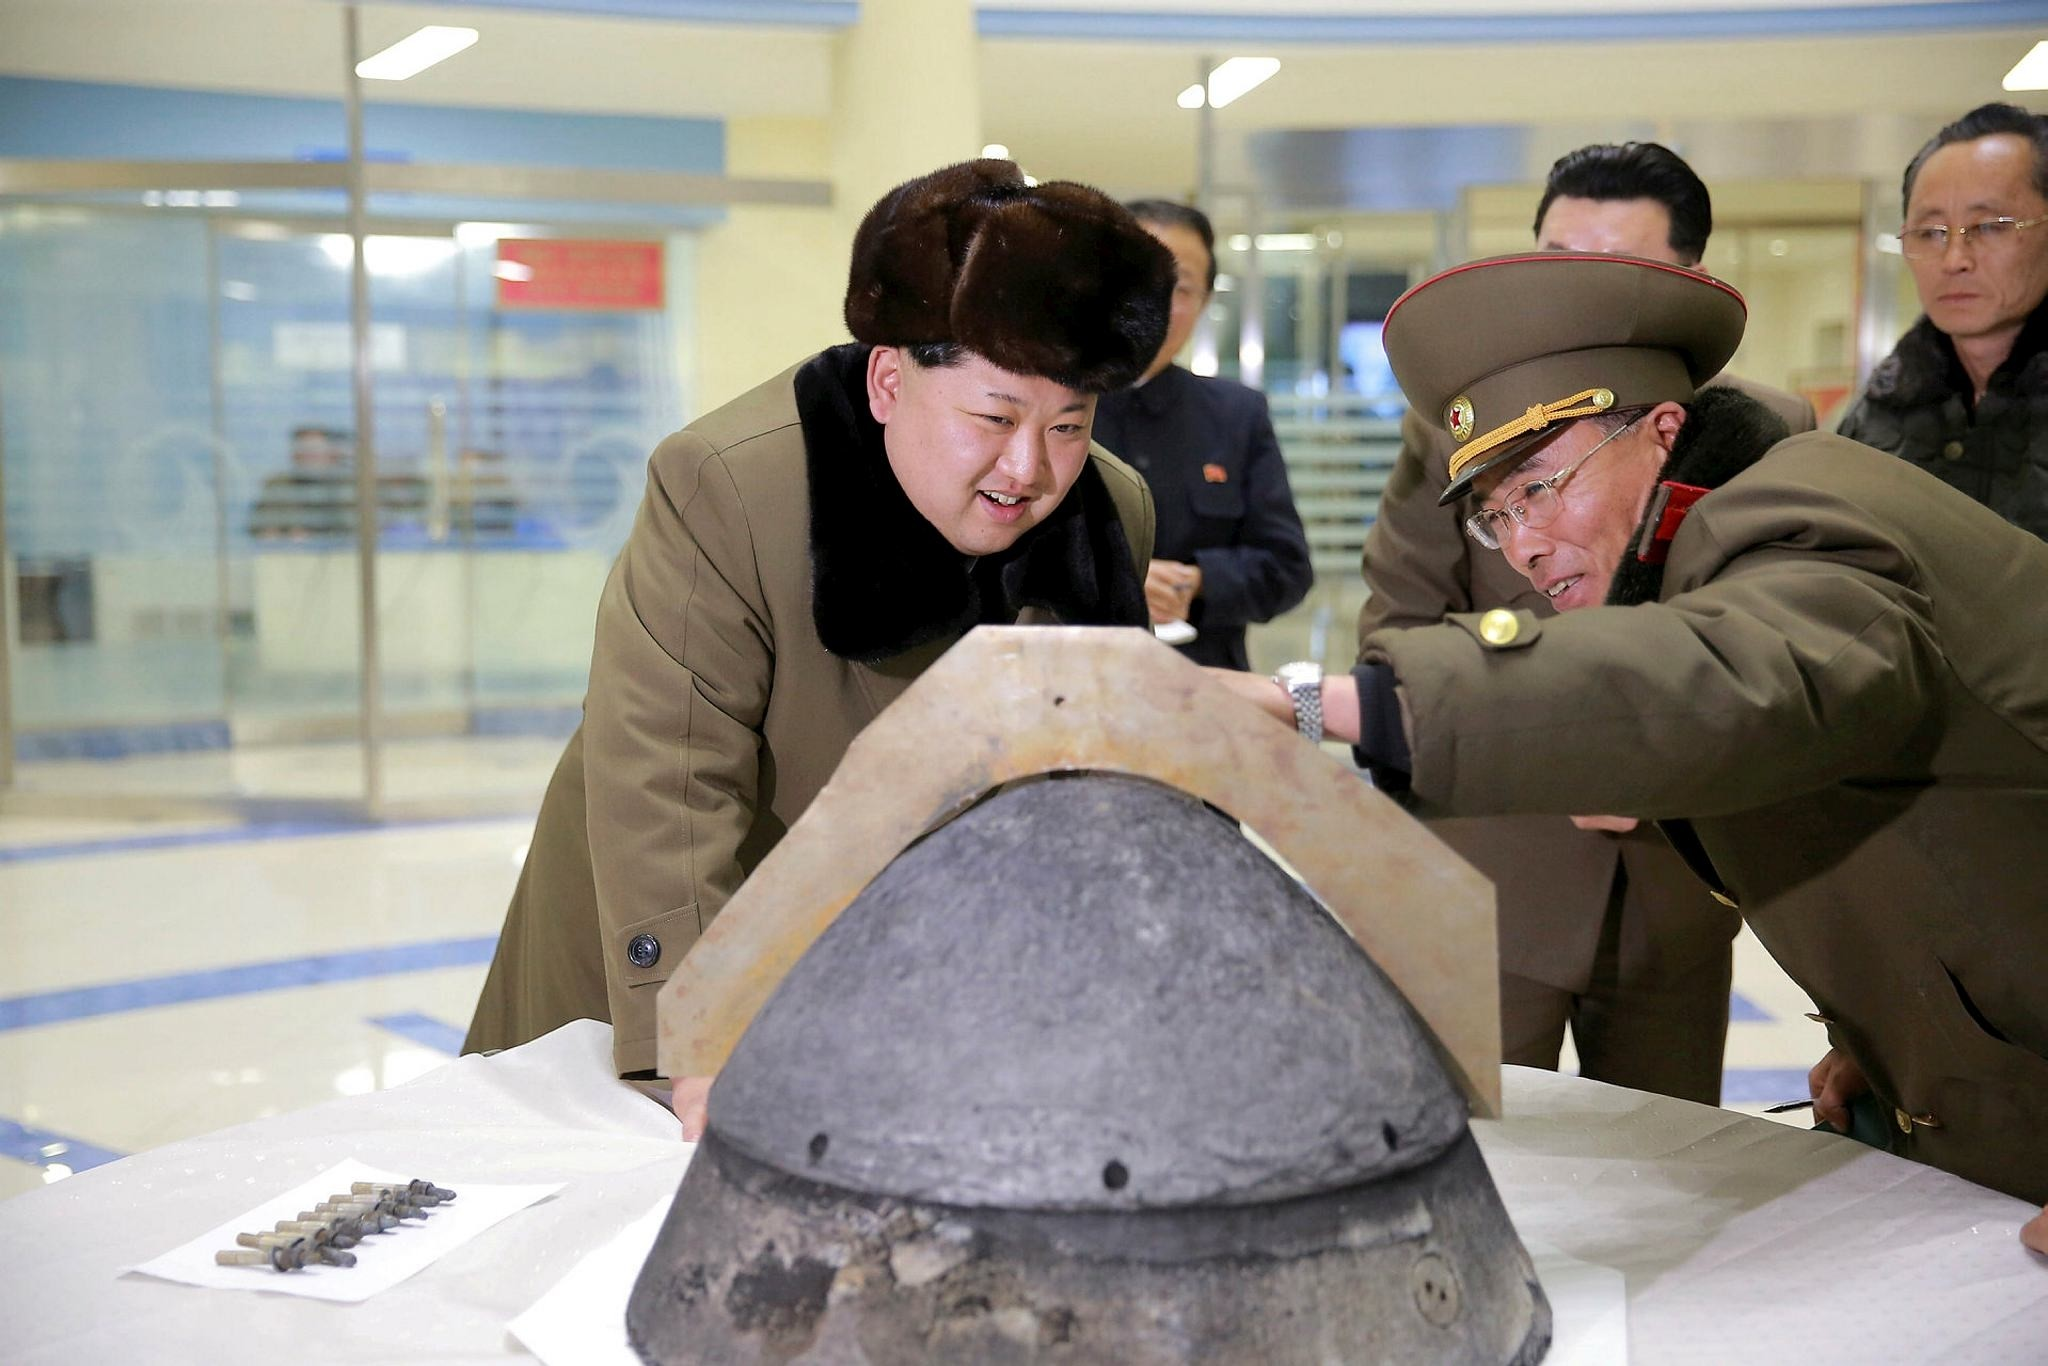 North Korean leader Kim Jong Un looks at a rocket warhead tip after a simulated test of atmospheric re-entry of a ballistic missile, at an unidentified location in this undated file photo released by North Korea's KCNA in Pyongyang on March 15, 2016.